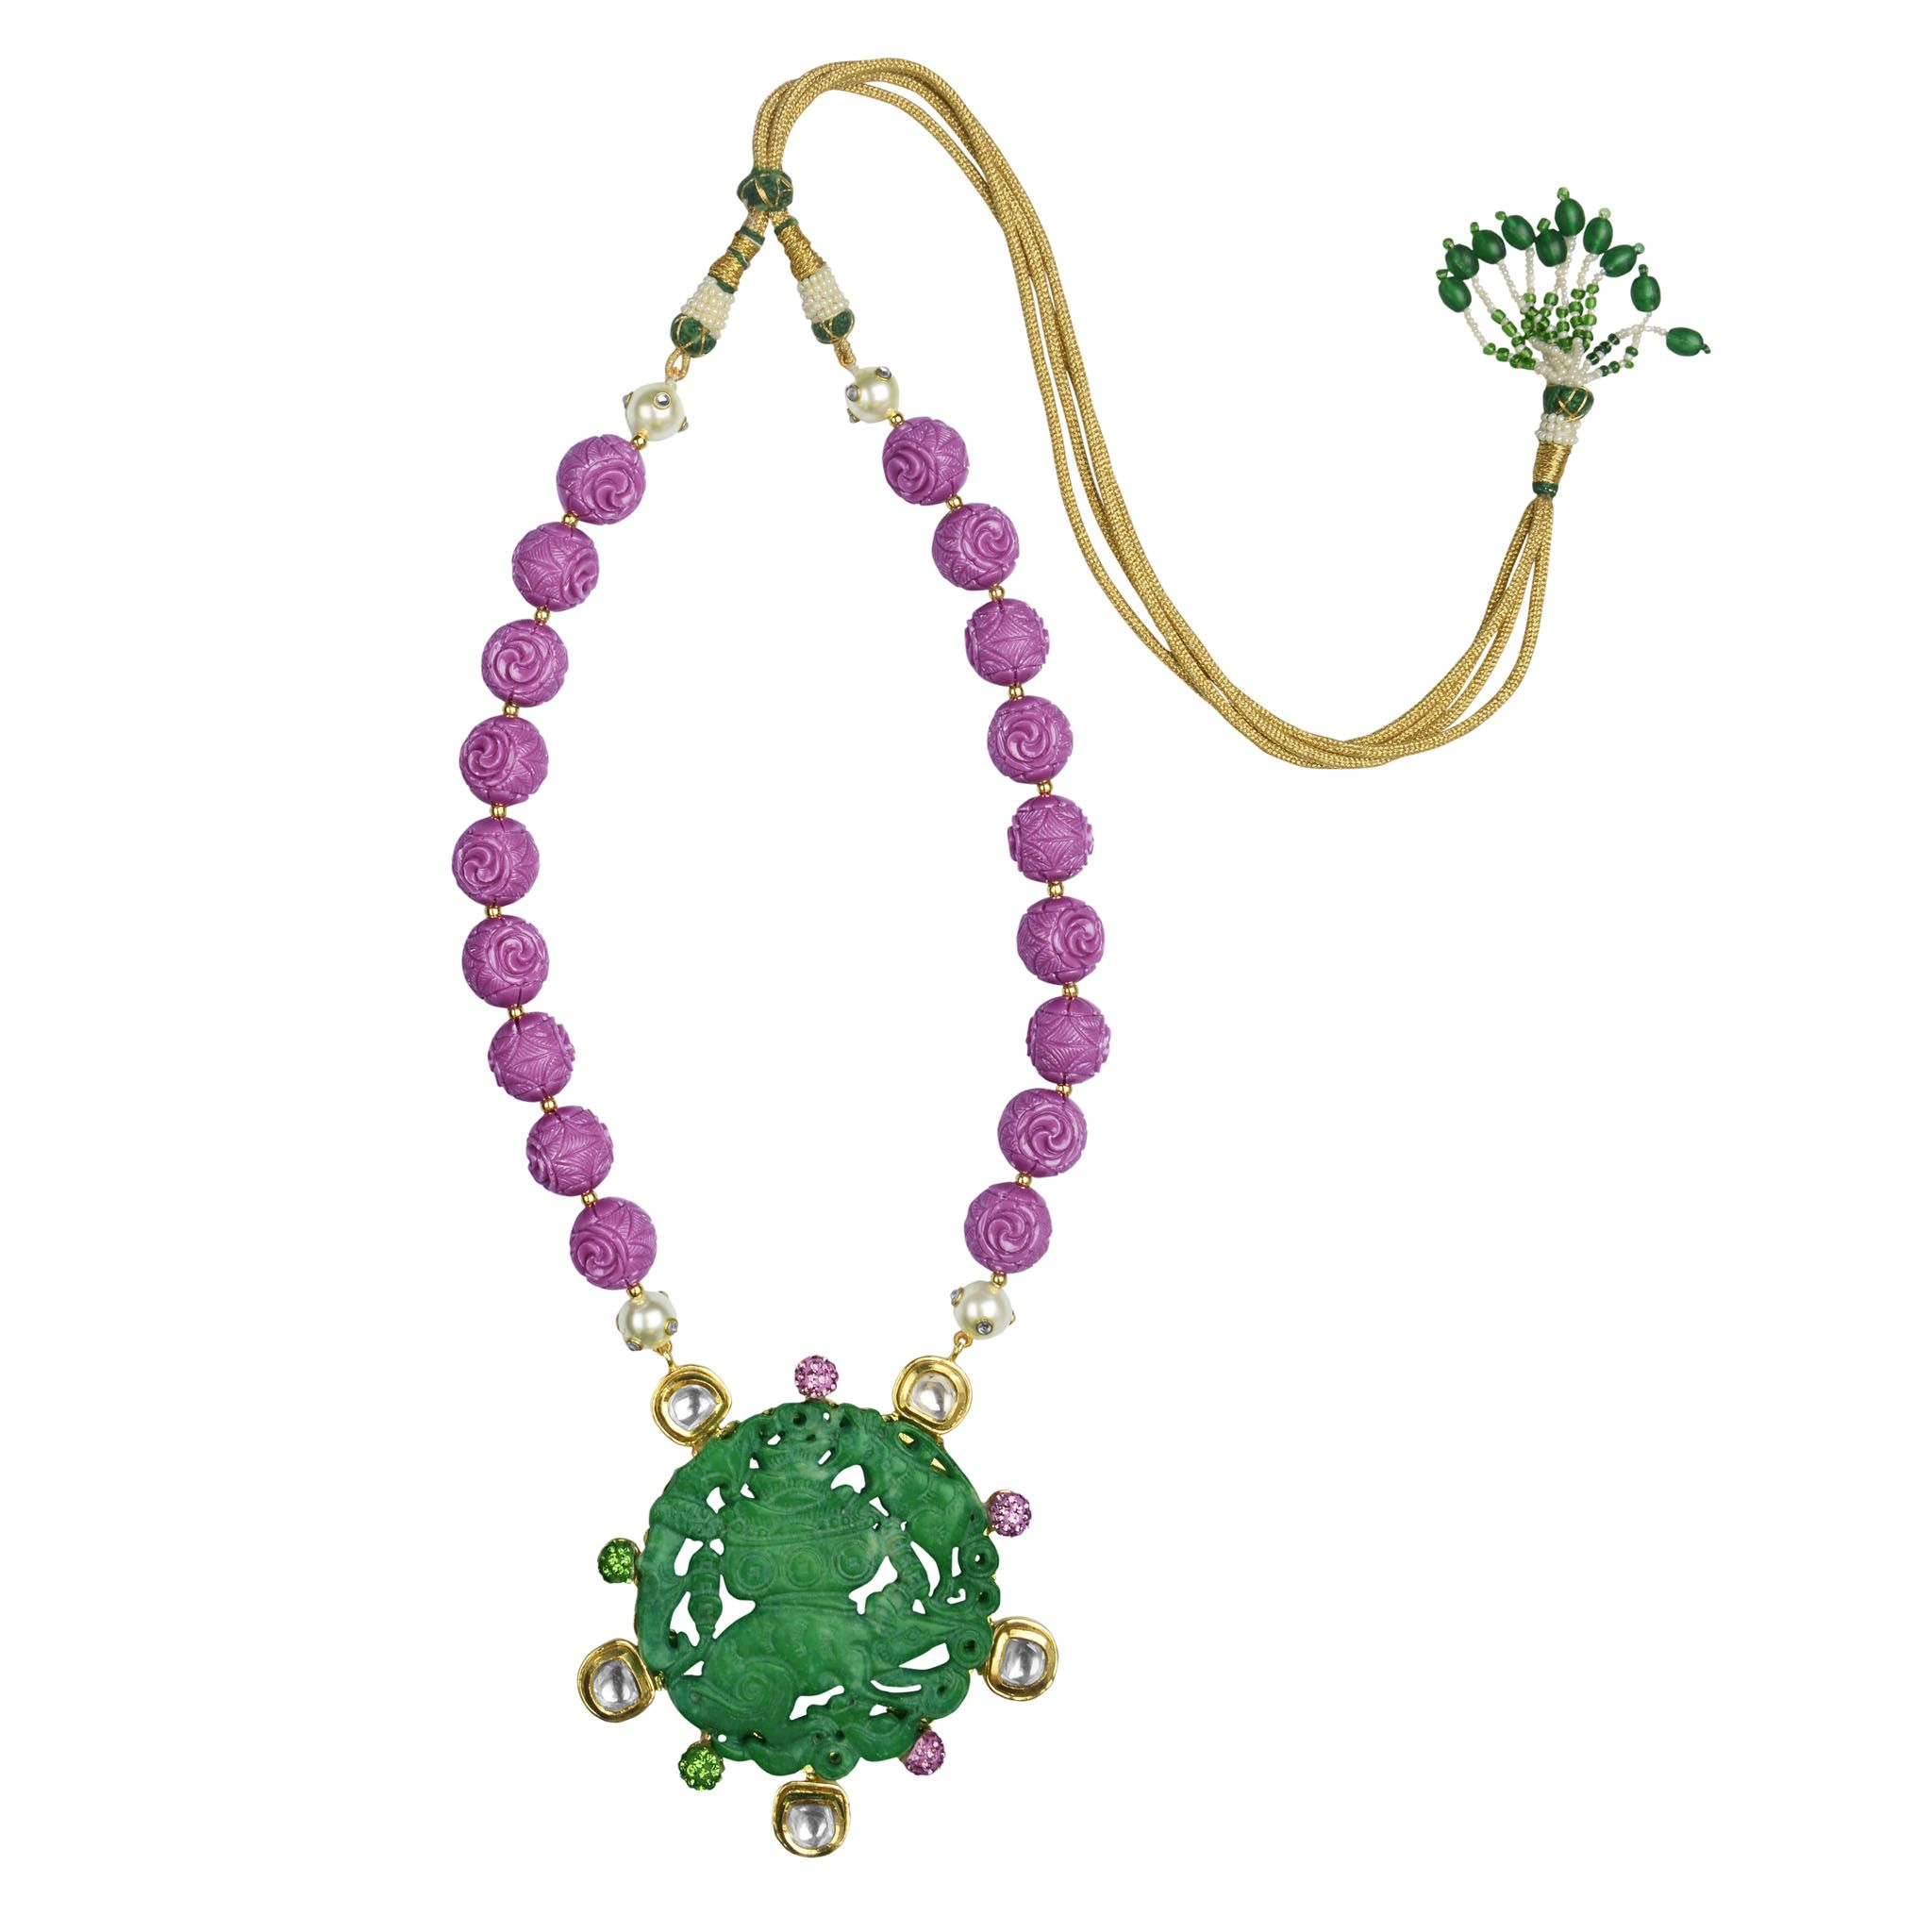 Intricately carved green and purple onyx stones strung together with